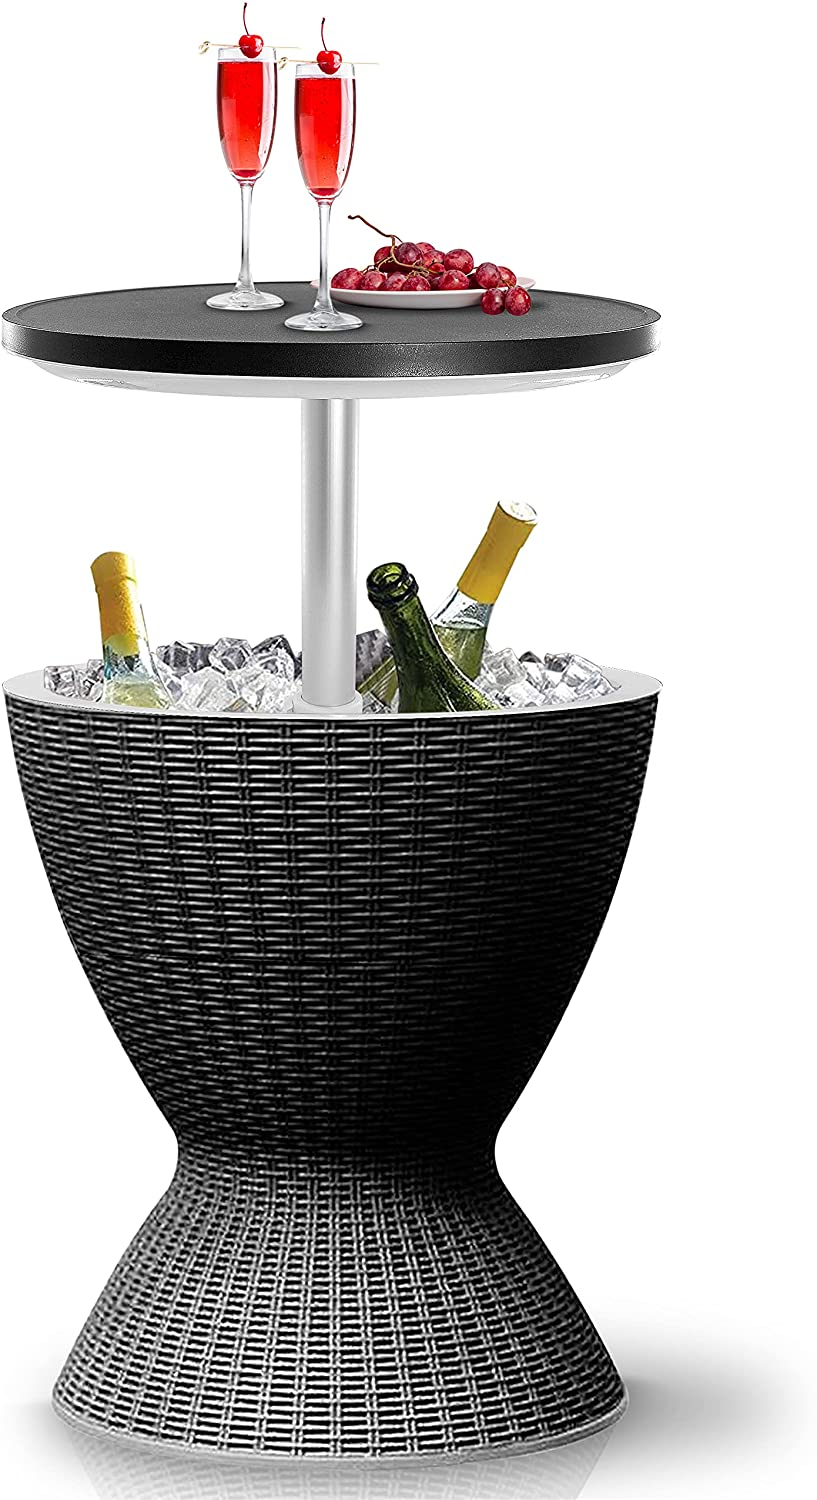 SereneLife Outdoor Bar Cooler Table-All-Weather a Sales results Virginia Beach Mall No. 1 Furniture Cool